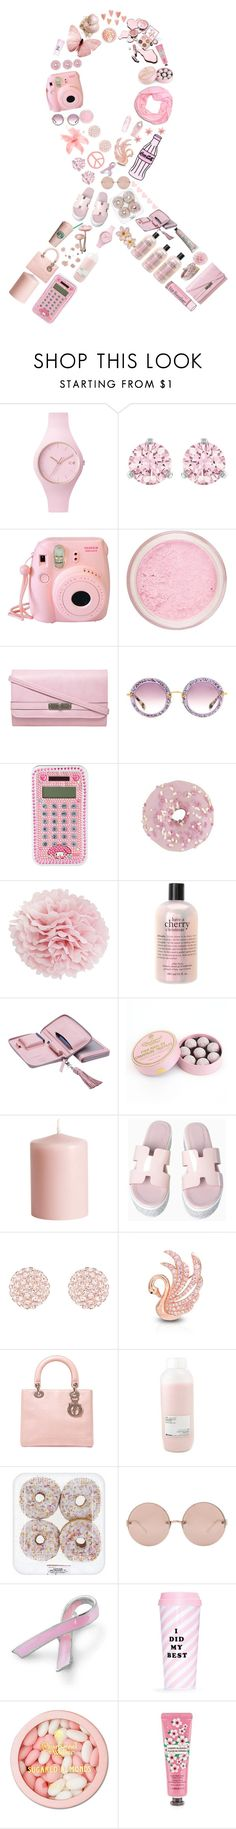 """I Wear Pink to help find a cure for breast cancer!"" by stelbell ❤ liked on Polyvore featuring Ice-Watch, Swarovski, Cotton Candy, Fujifilm, Dorothy Perkins, Miu Miu, Miss Etoile, philosophy, Lili Radu and Charbonnel et Walker"